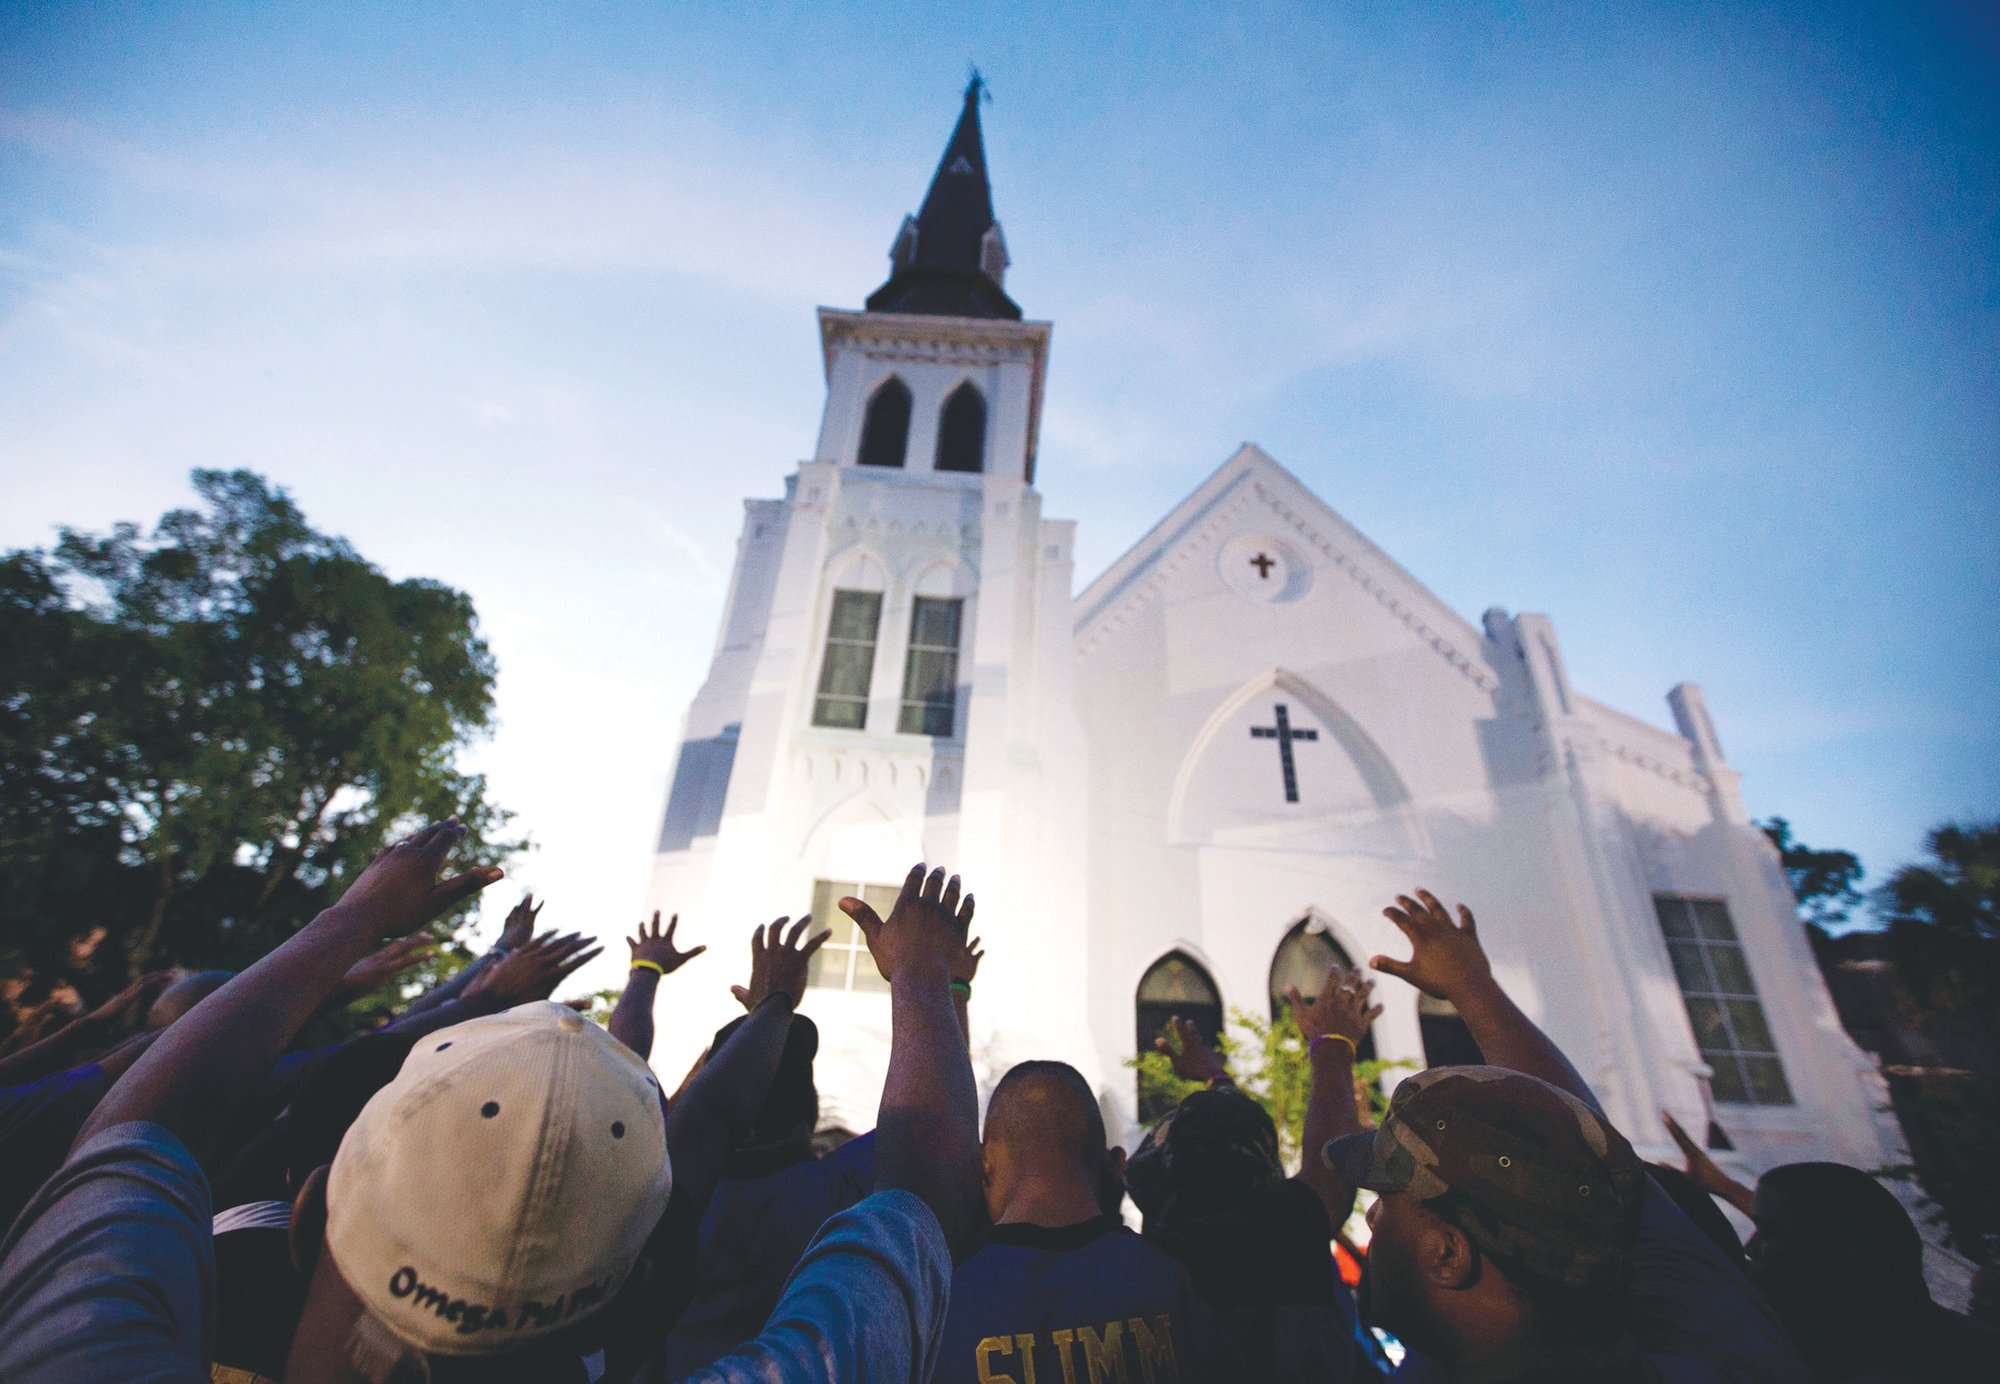 In this June 19, 2015 file photo, the men of Omega Psi Phi Fraternity Inc. lead a crowd of people in prayer outside the Emanuel AME Church, after a memorial for the nine people killed by Dylann Roof in Charleston.